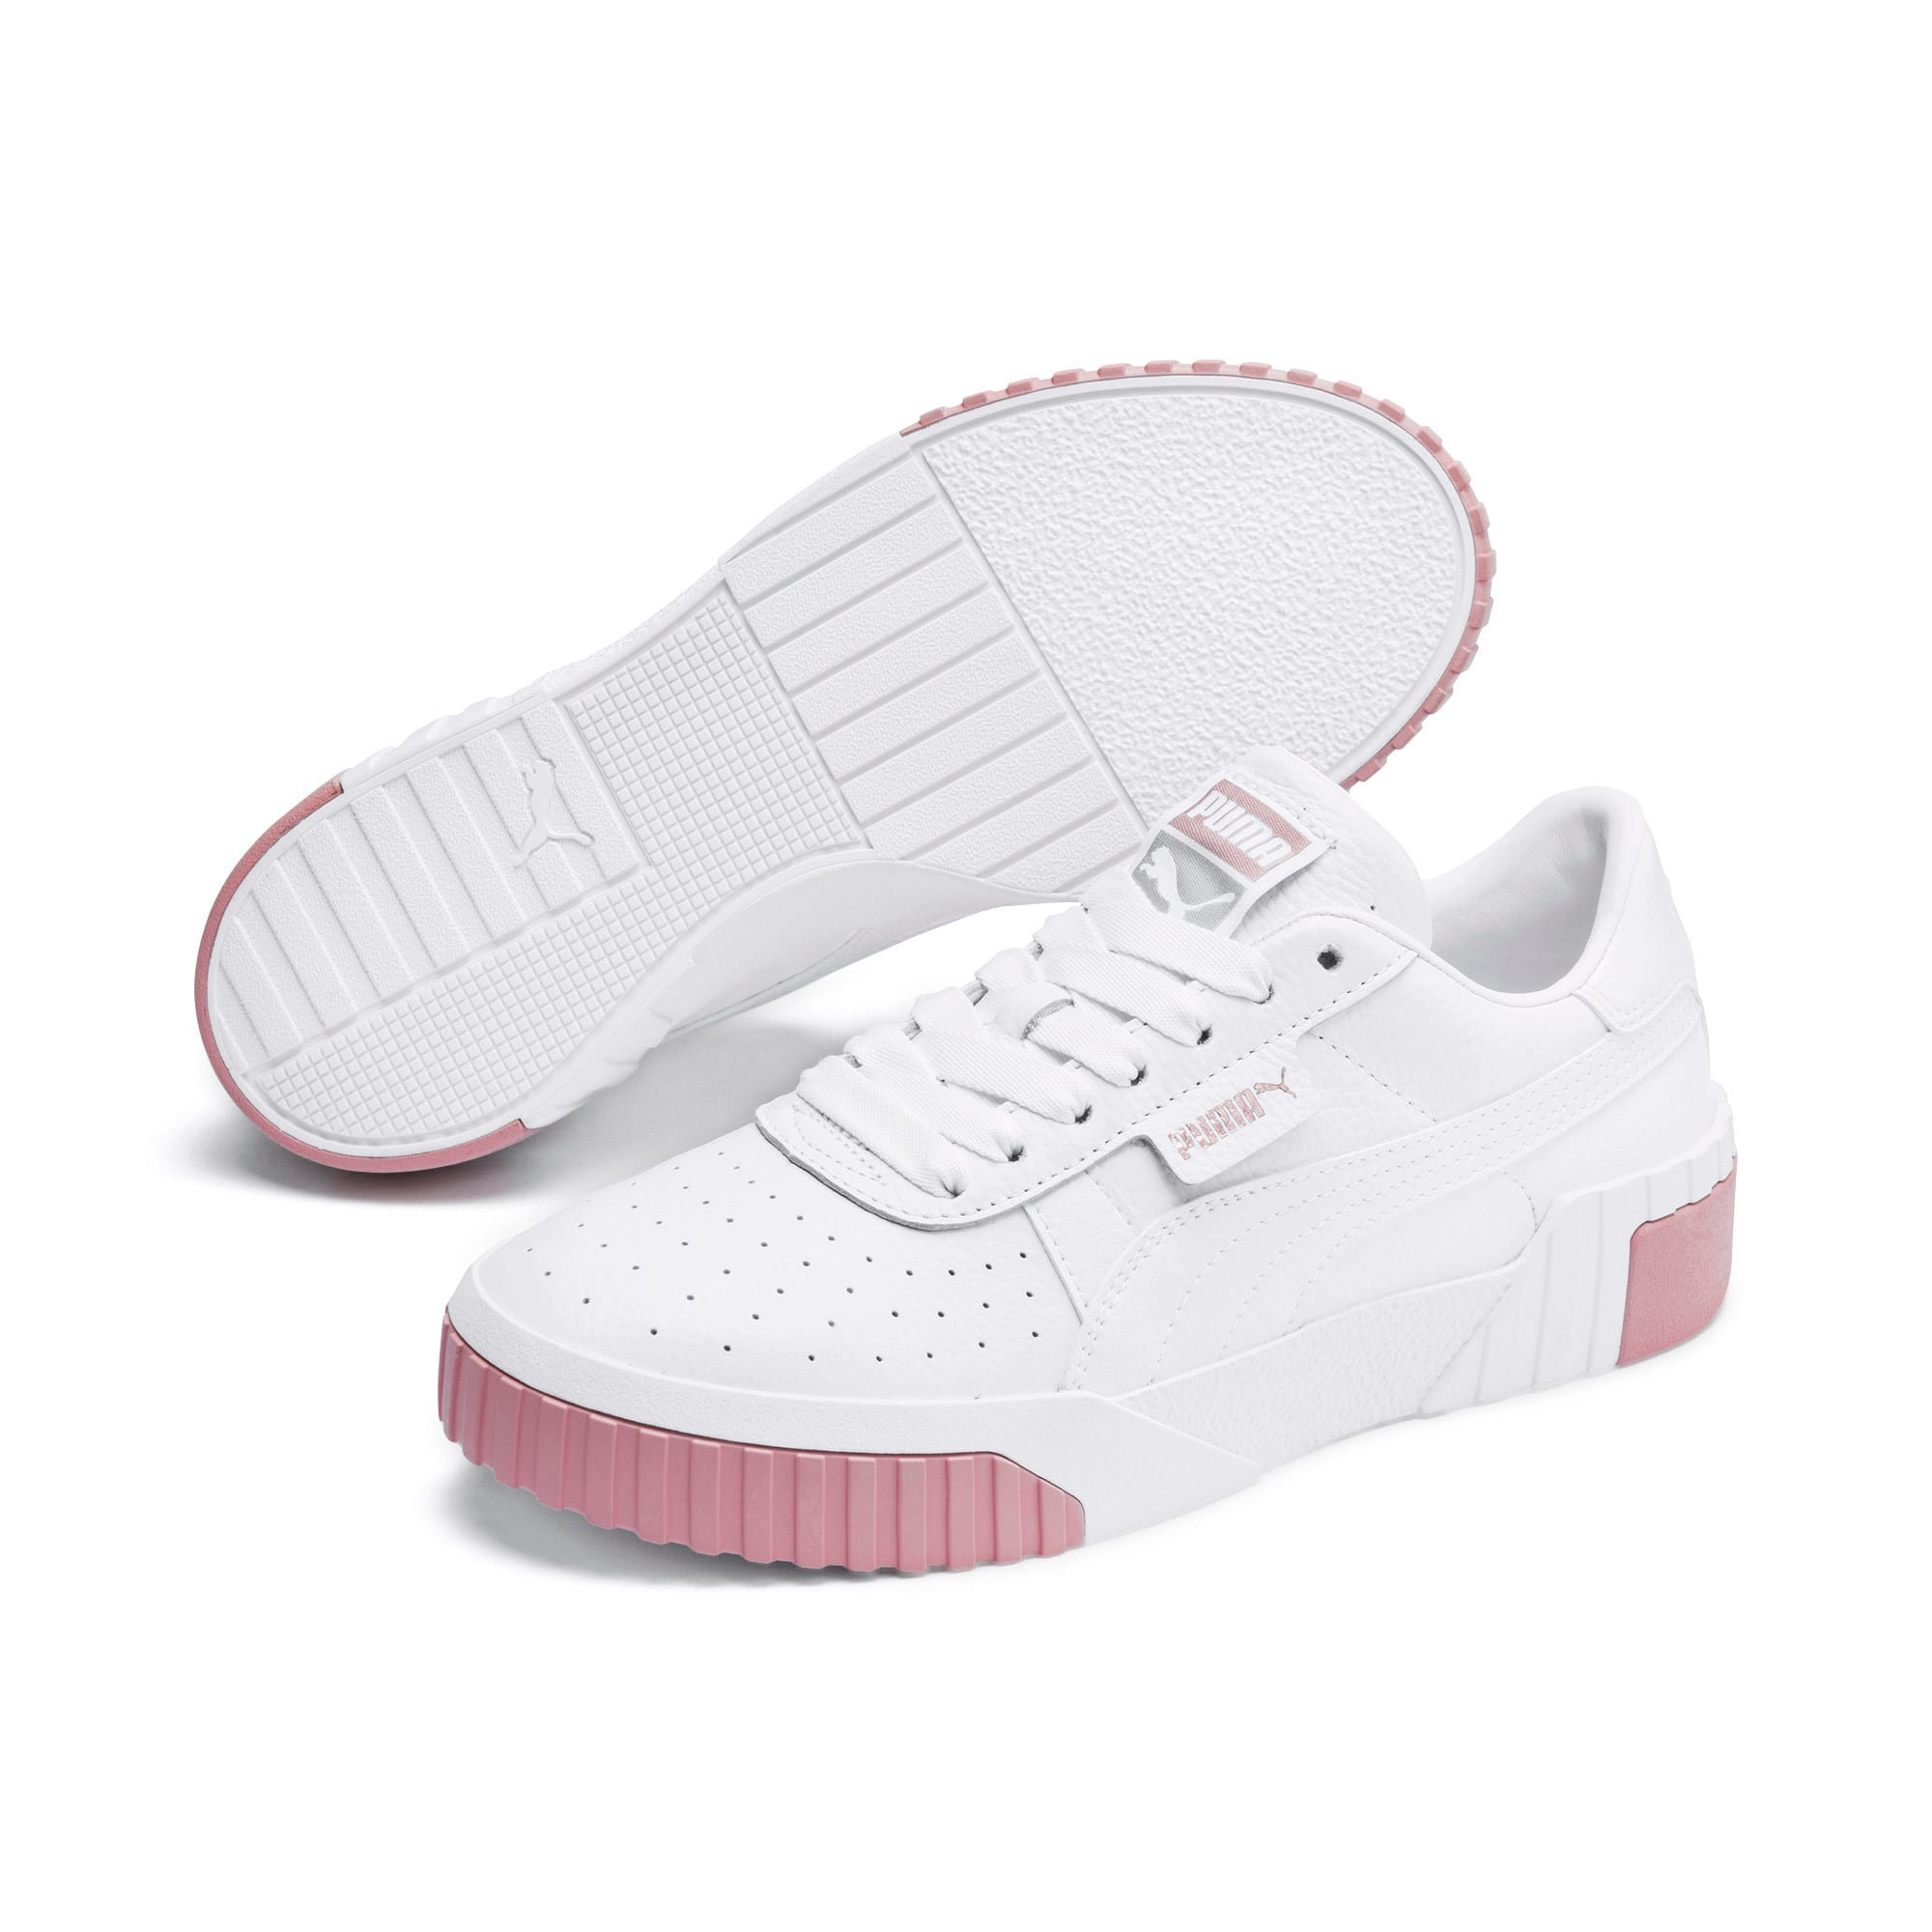 Thumbnail 3 of Cali Women's Trainers, Puma White-Rose Gold, medium